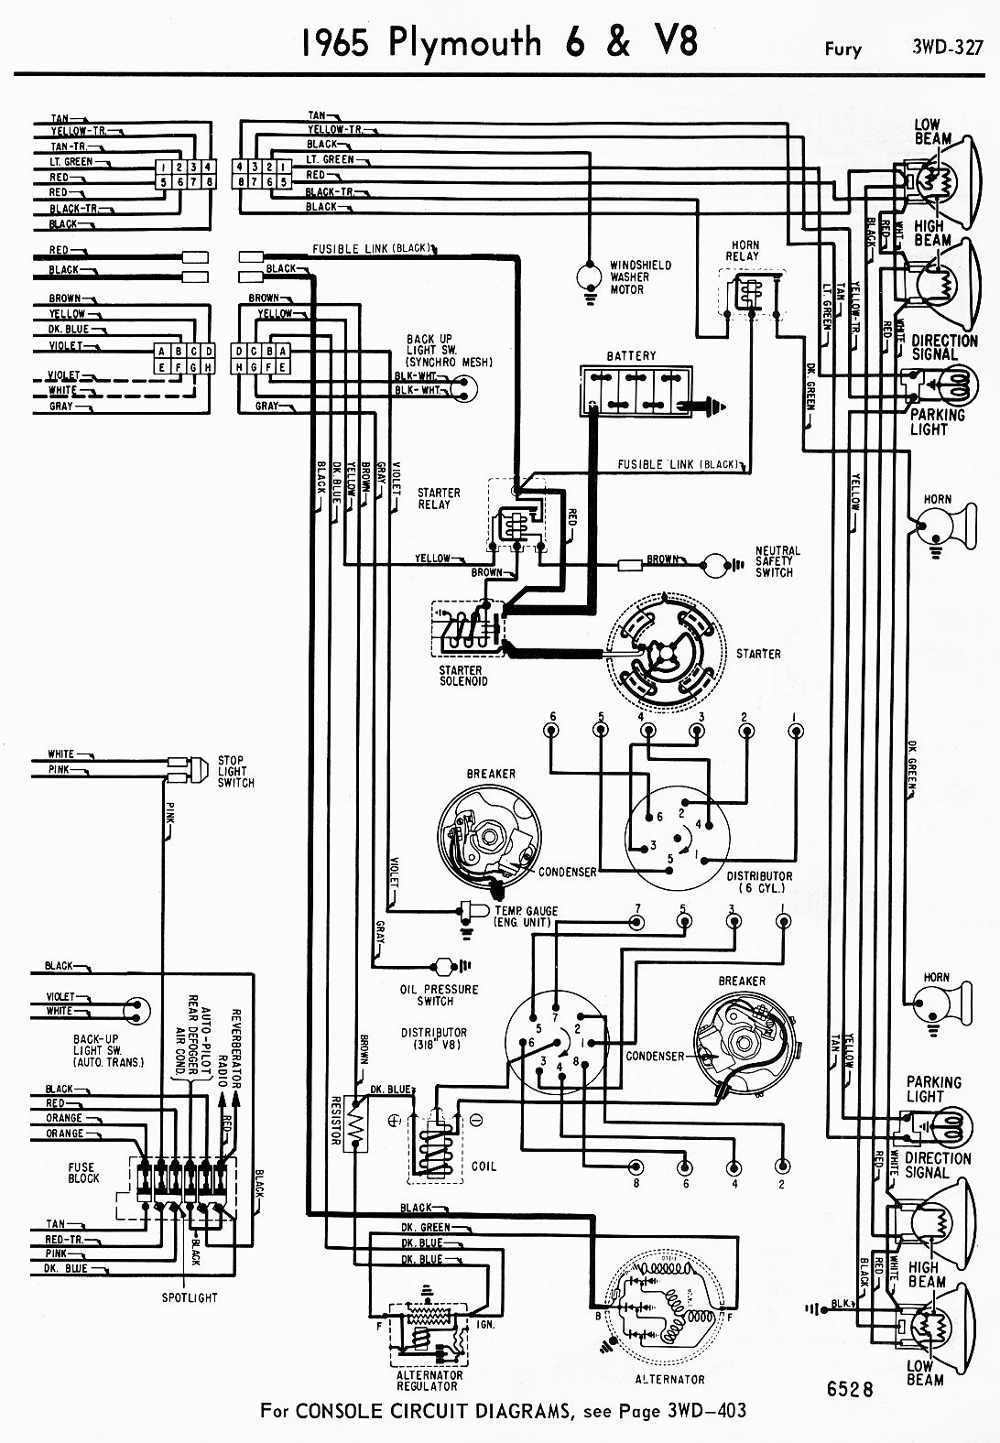 wiring diagrams of 1965 plymouth 6 and v8 fury part 2?t\=1508746003 1990 plymouth laser wiring diagram wiring diagram simonand 1990 corvette a/c wiring diagram at gsmx.co